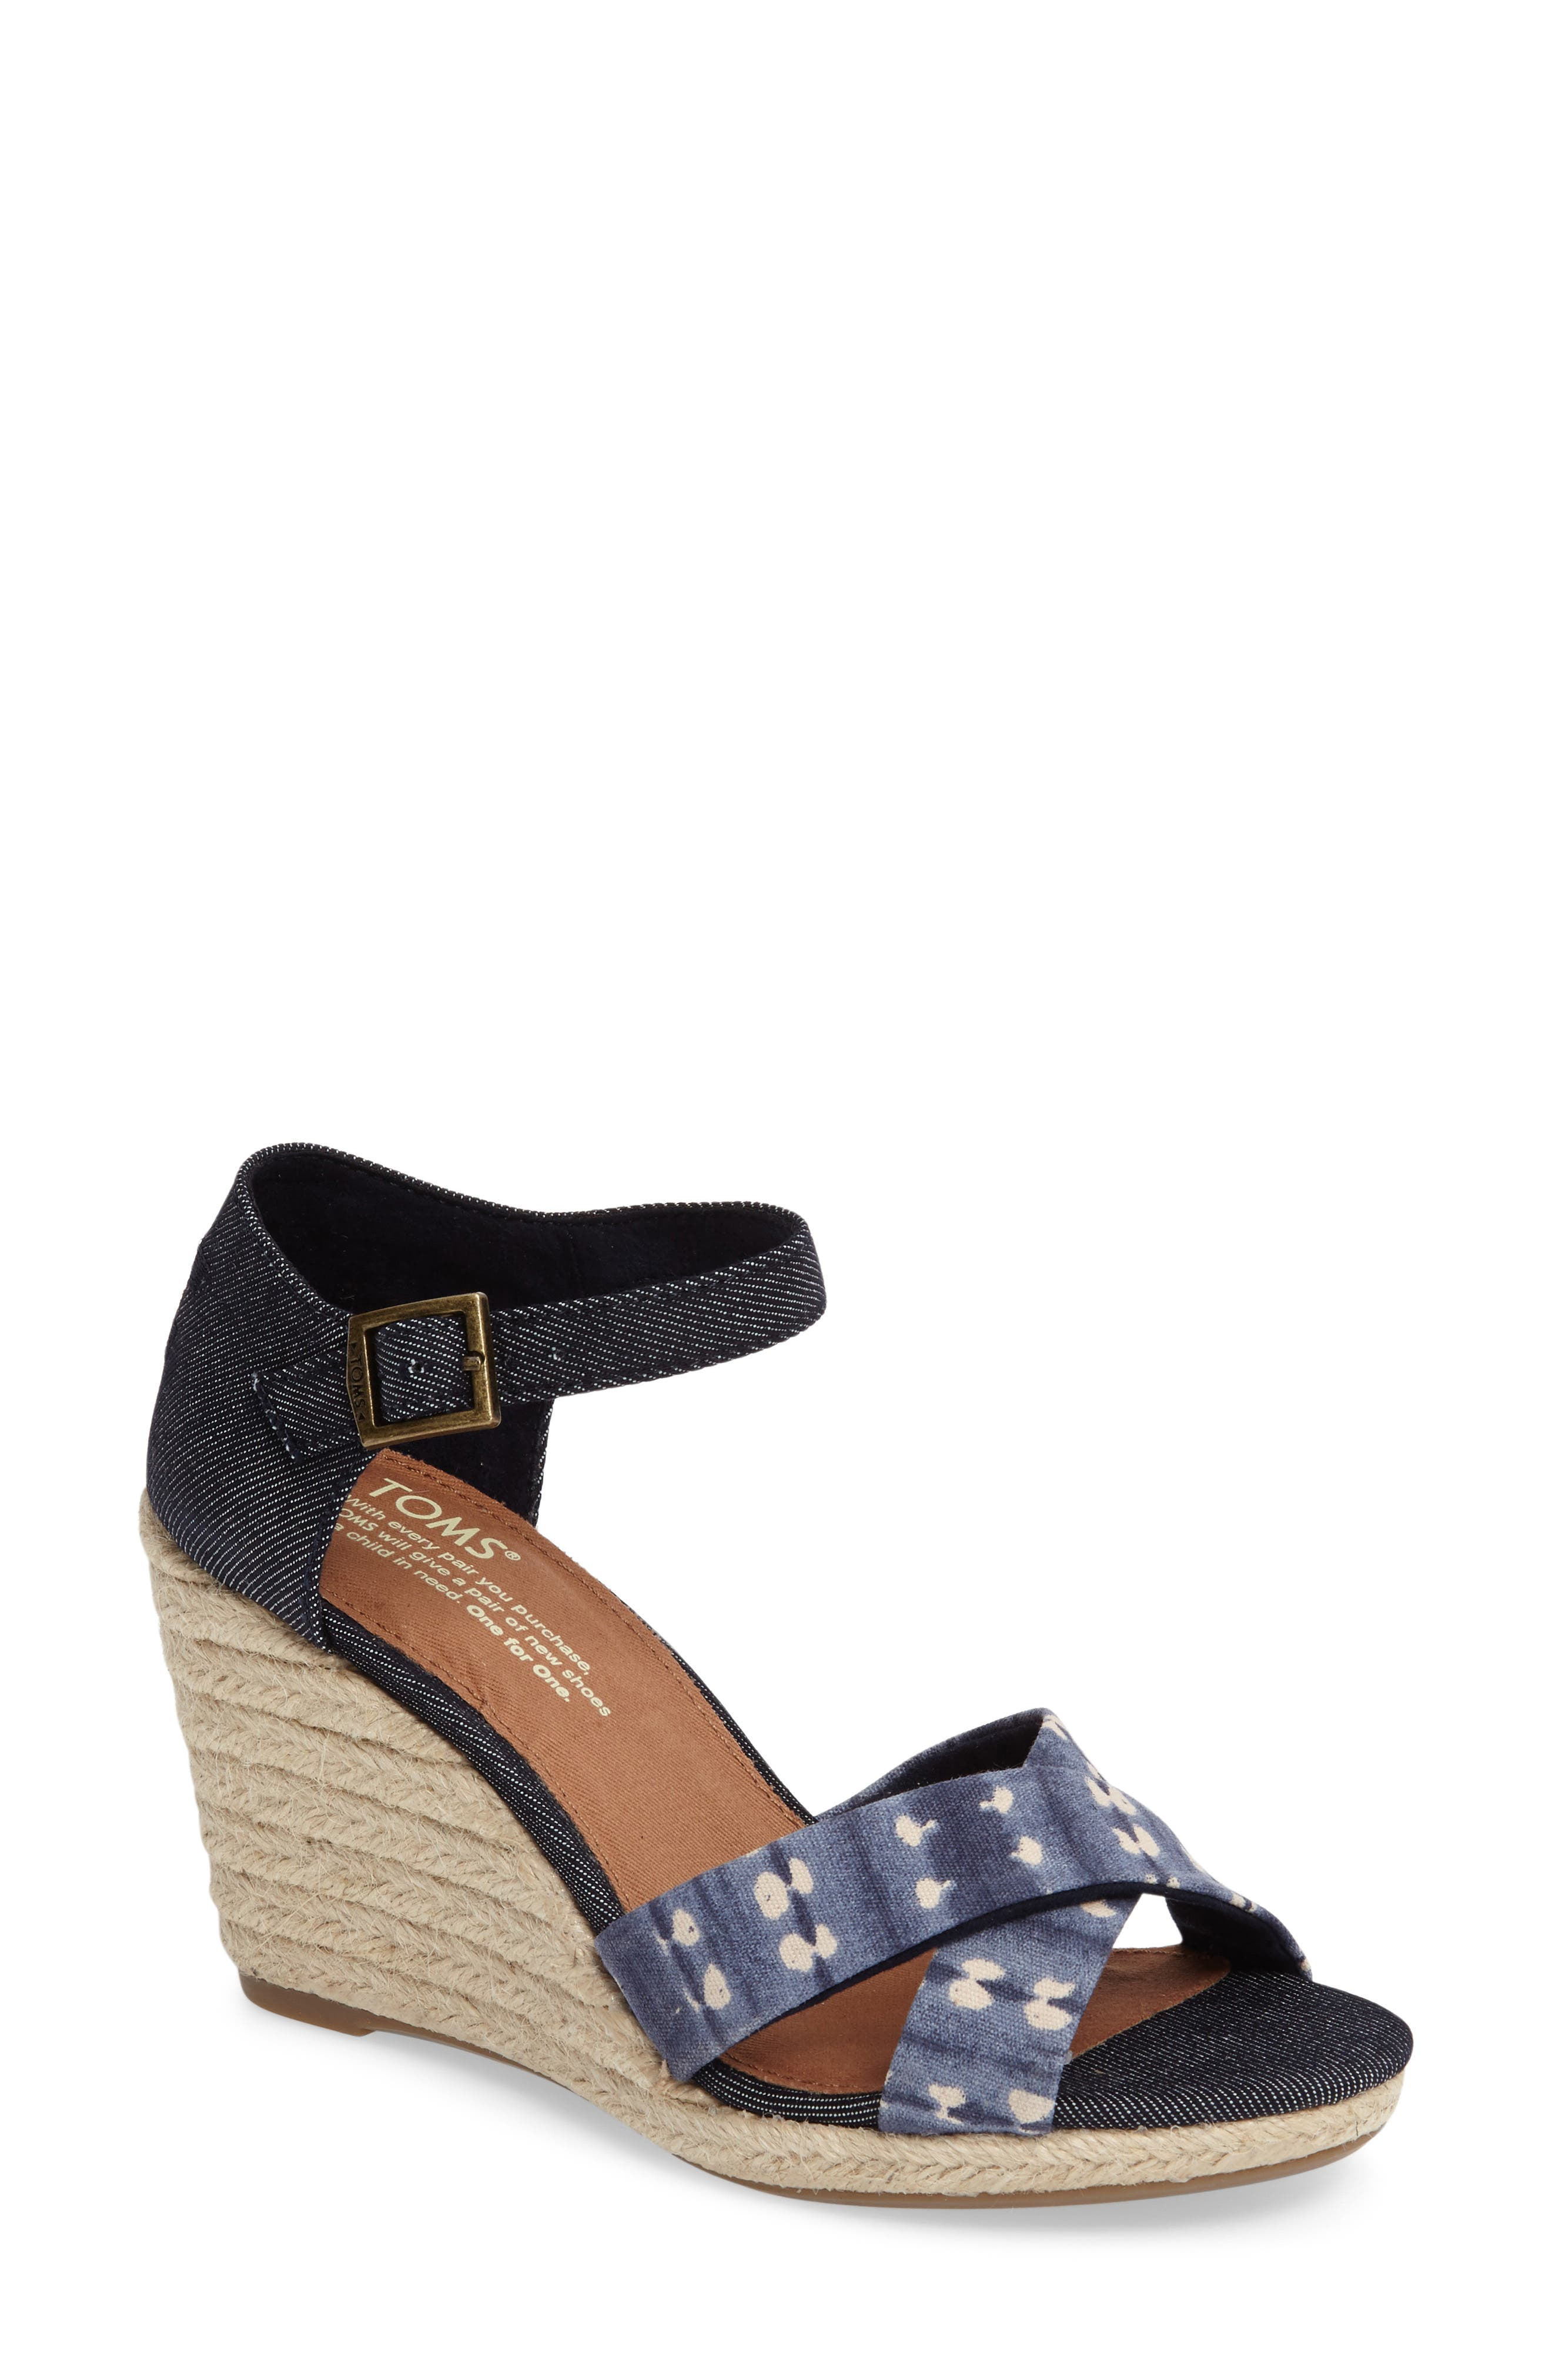 Alternate Image 1 Selected - TOMS Sienna Wedge Sandal (Women)